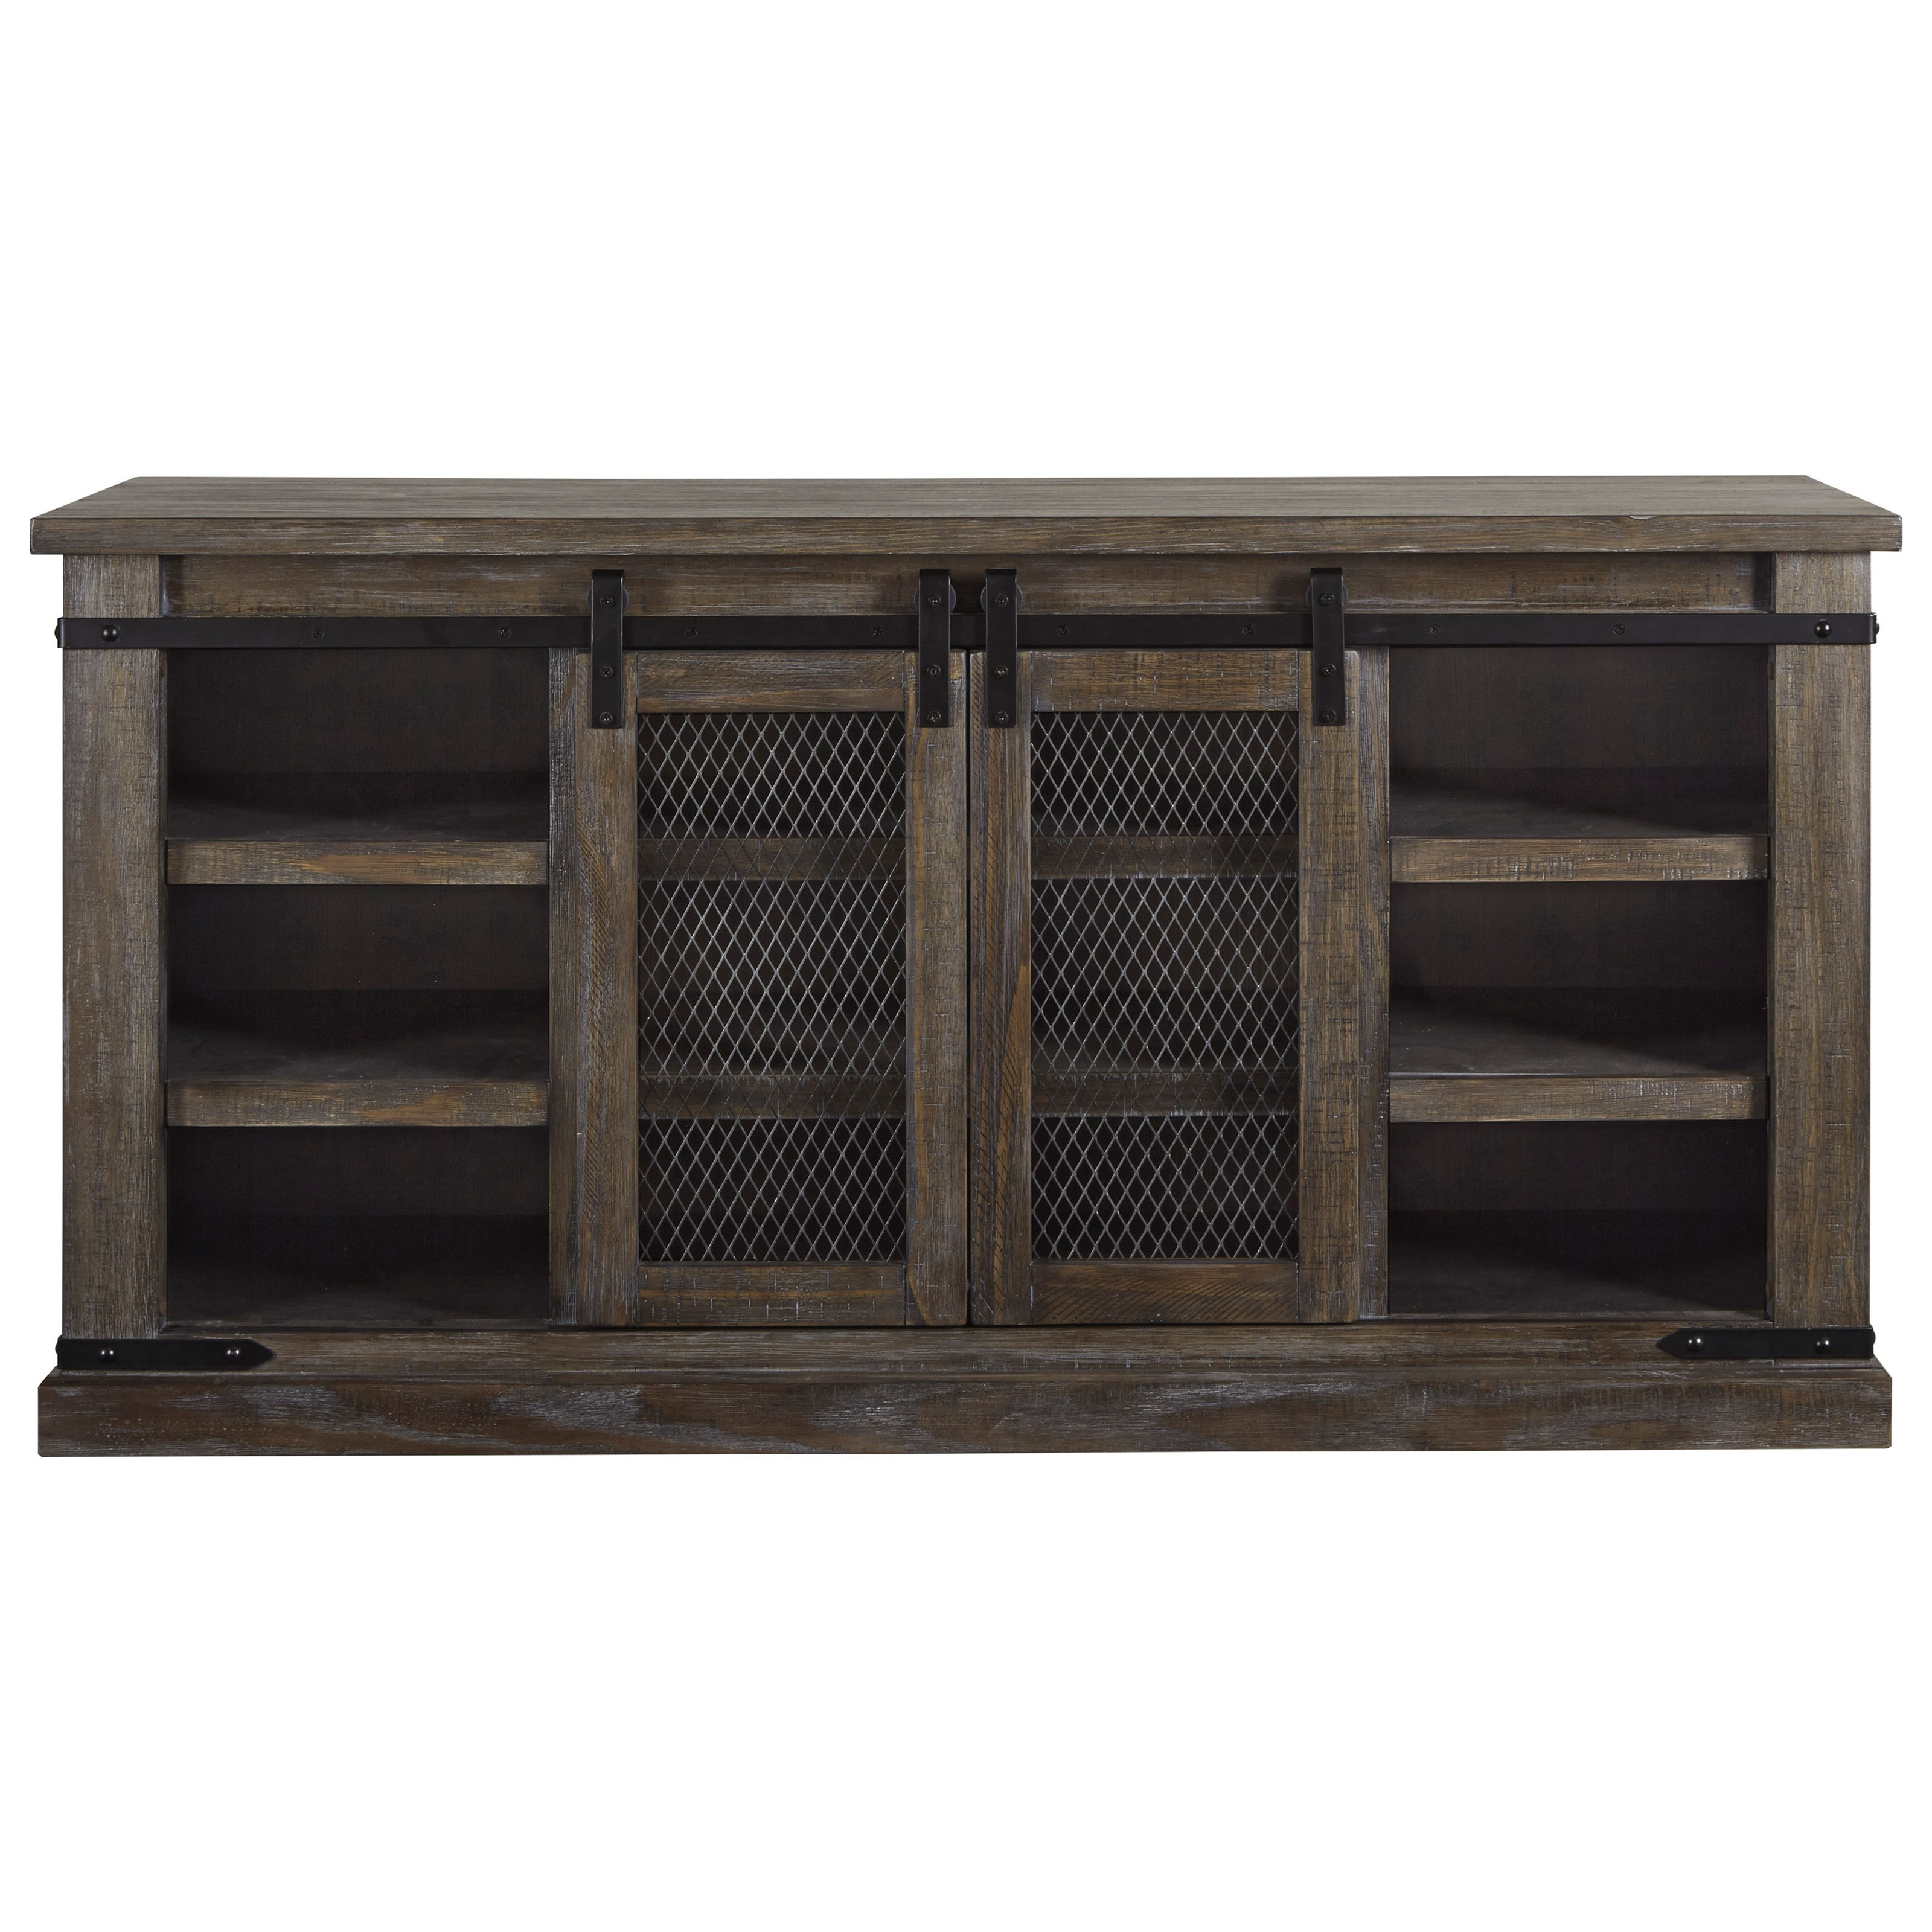 Danell Ridge Large TV Stand by Ashley (Signature Design) at Johnny Janosik